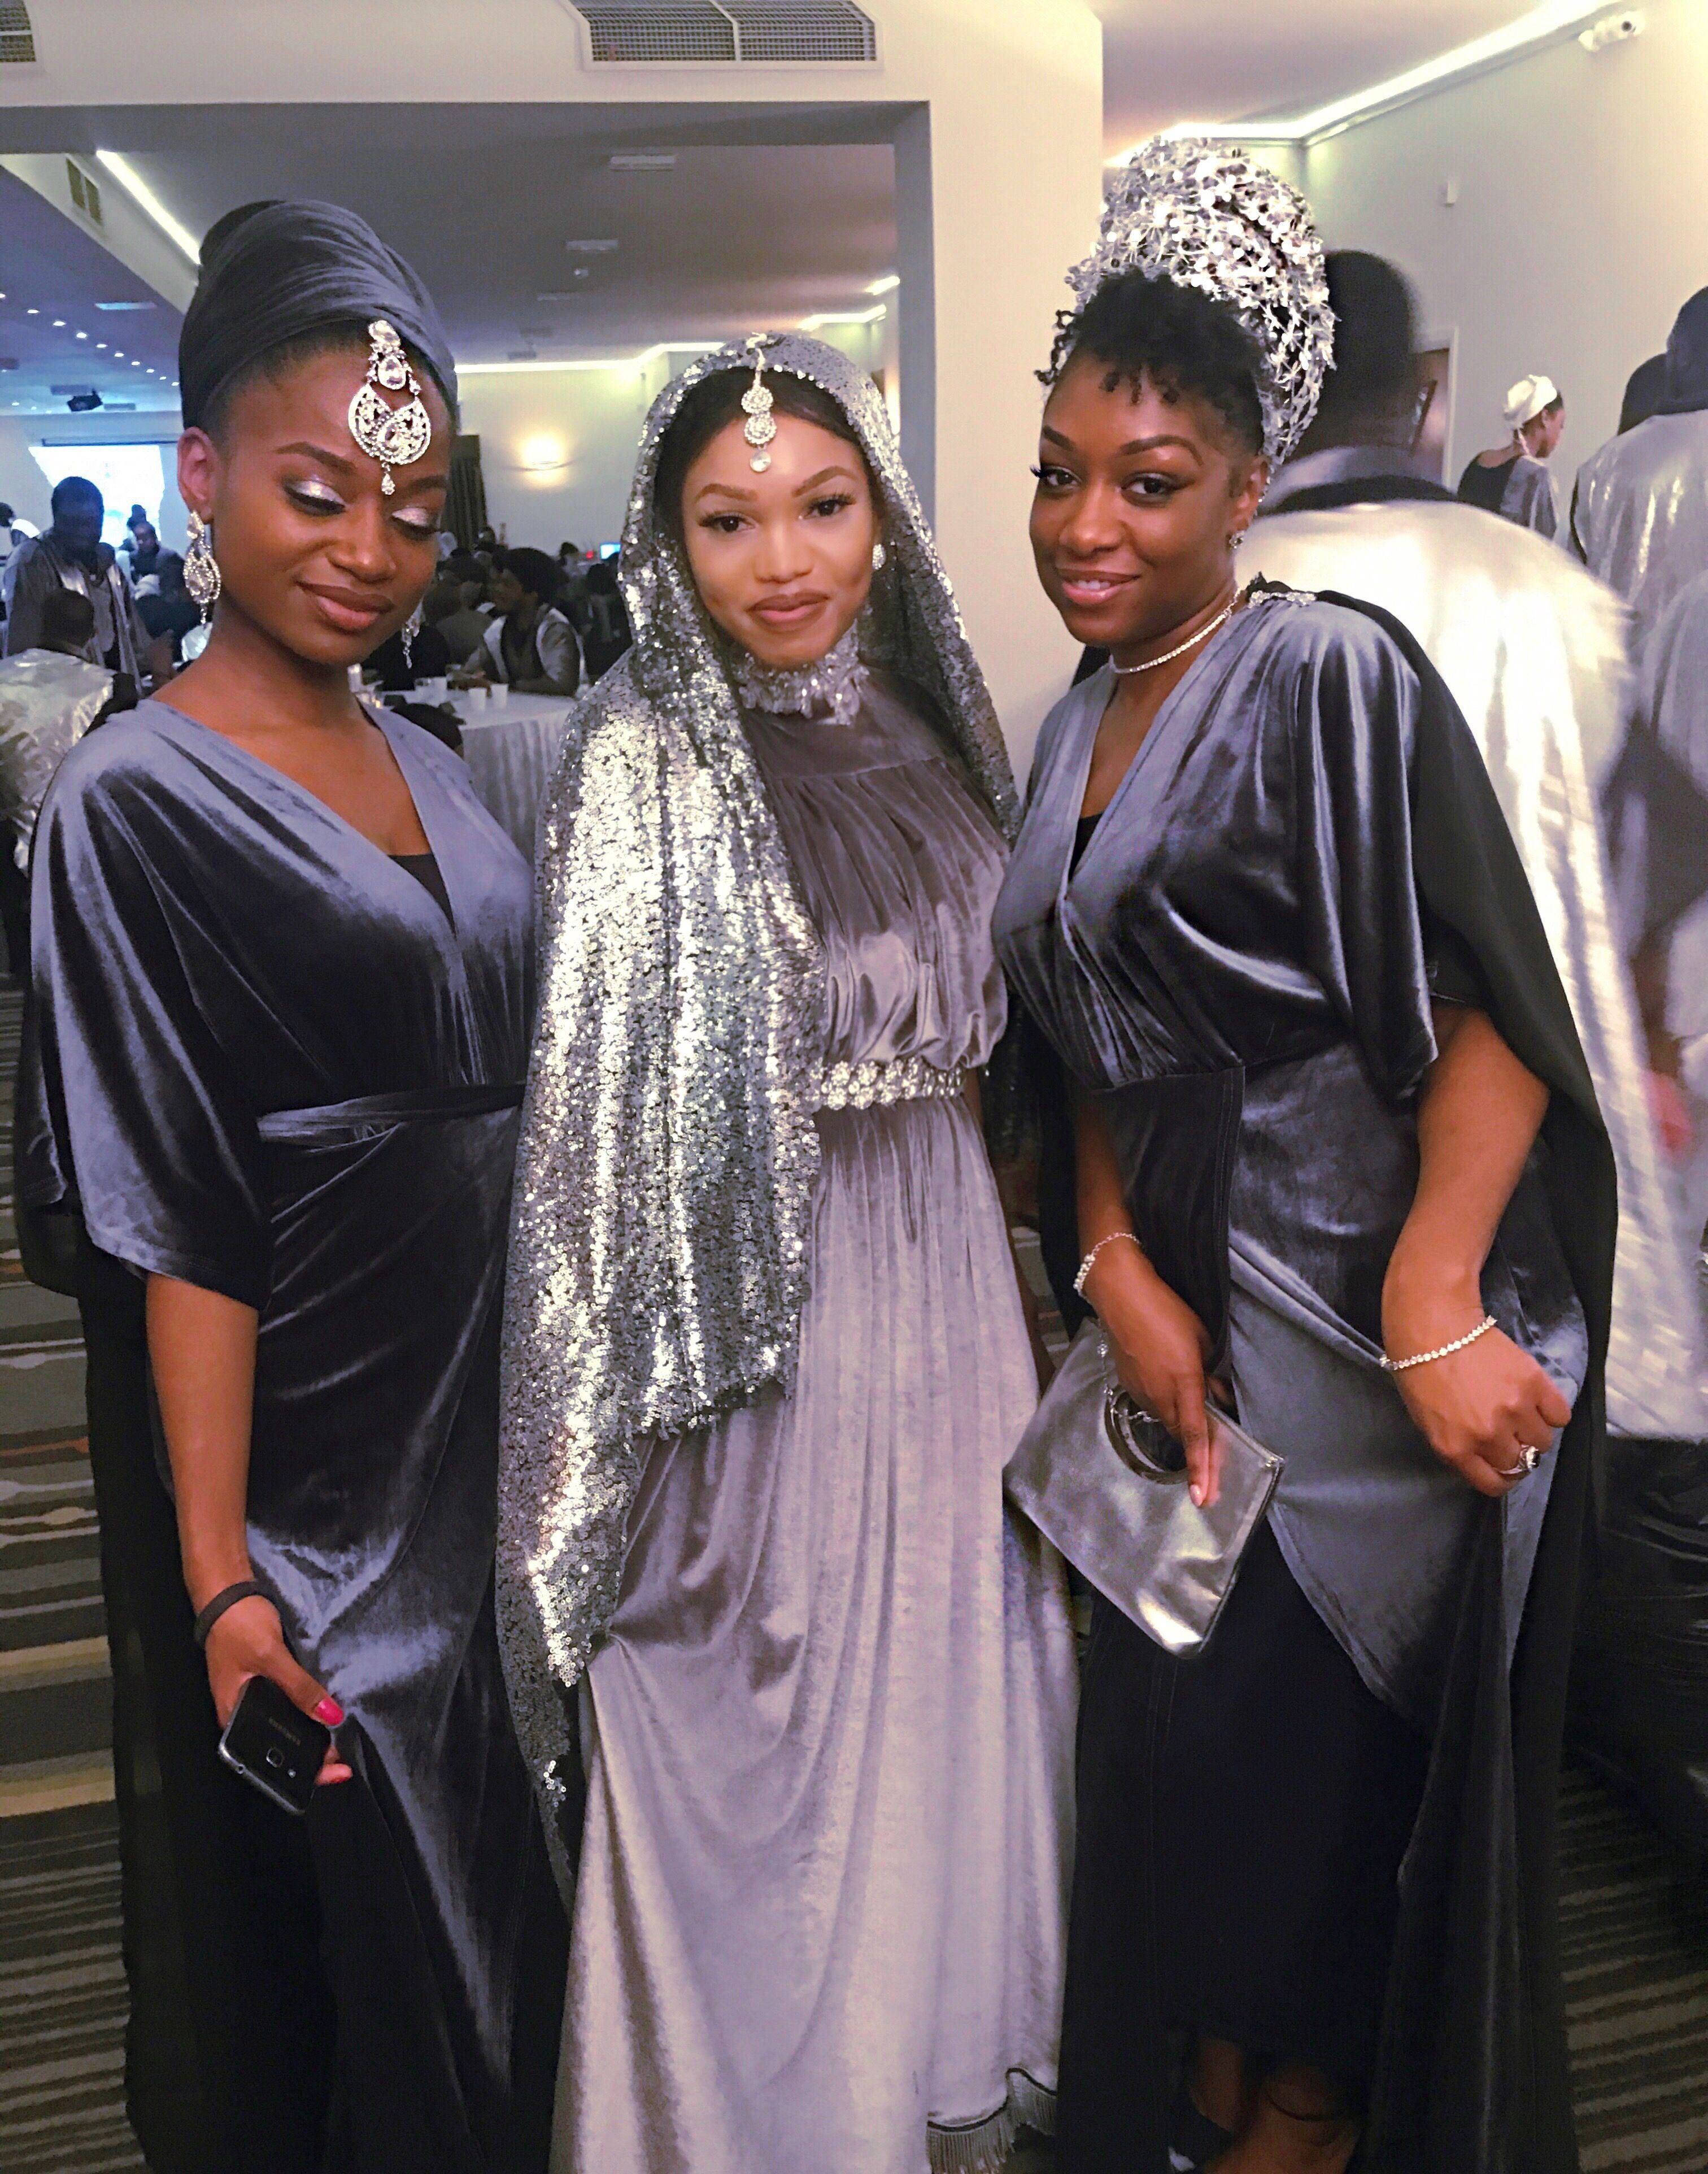 Iuic London Passover 2018 Hebrew Clothing Israel Fashion Hebrew Israelite Clothing,African Wedding Guest Dress Styles